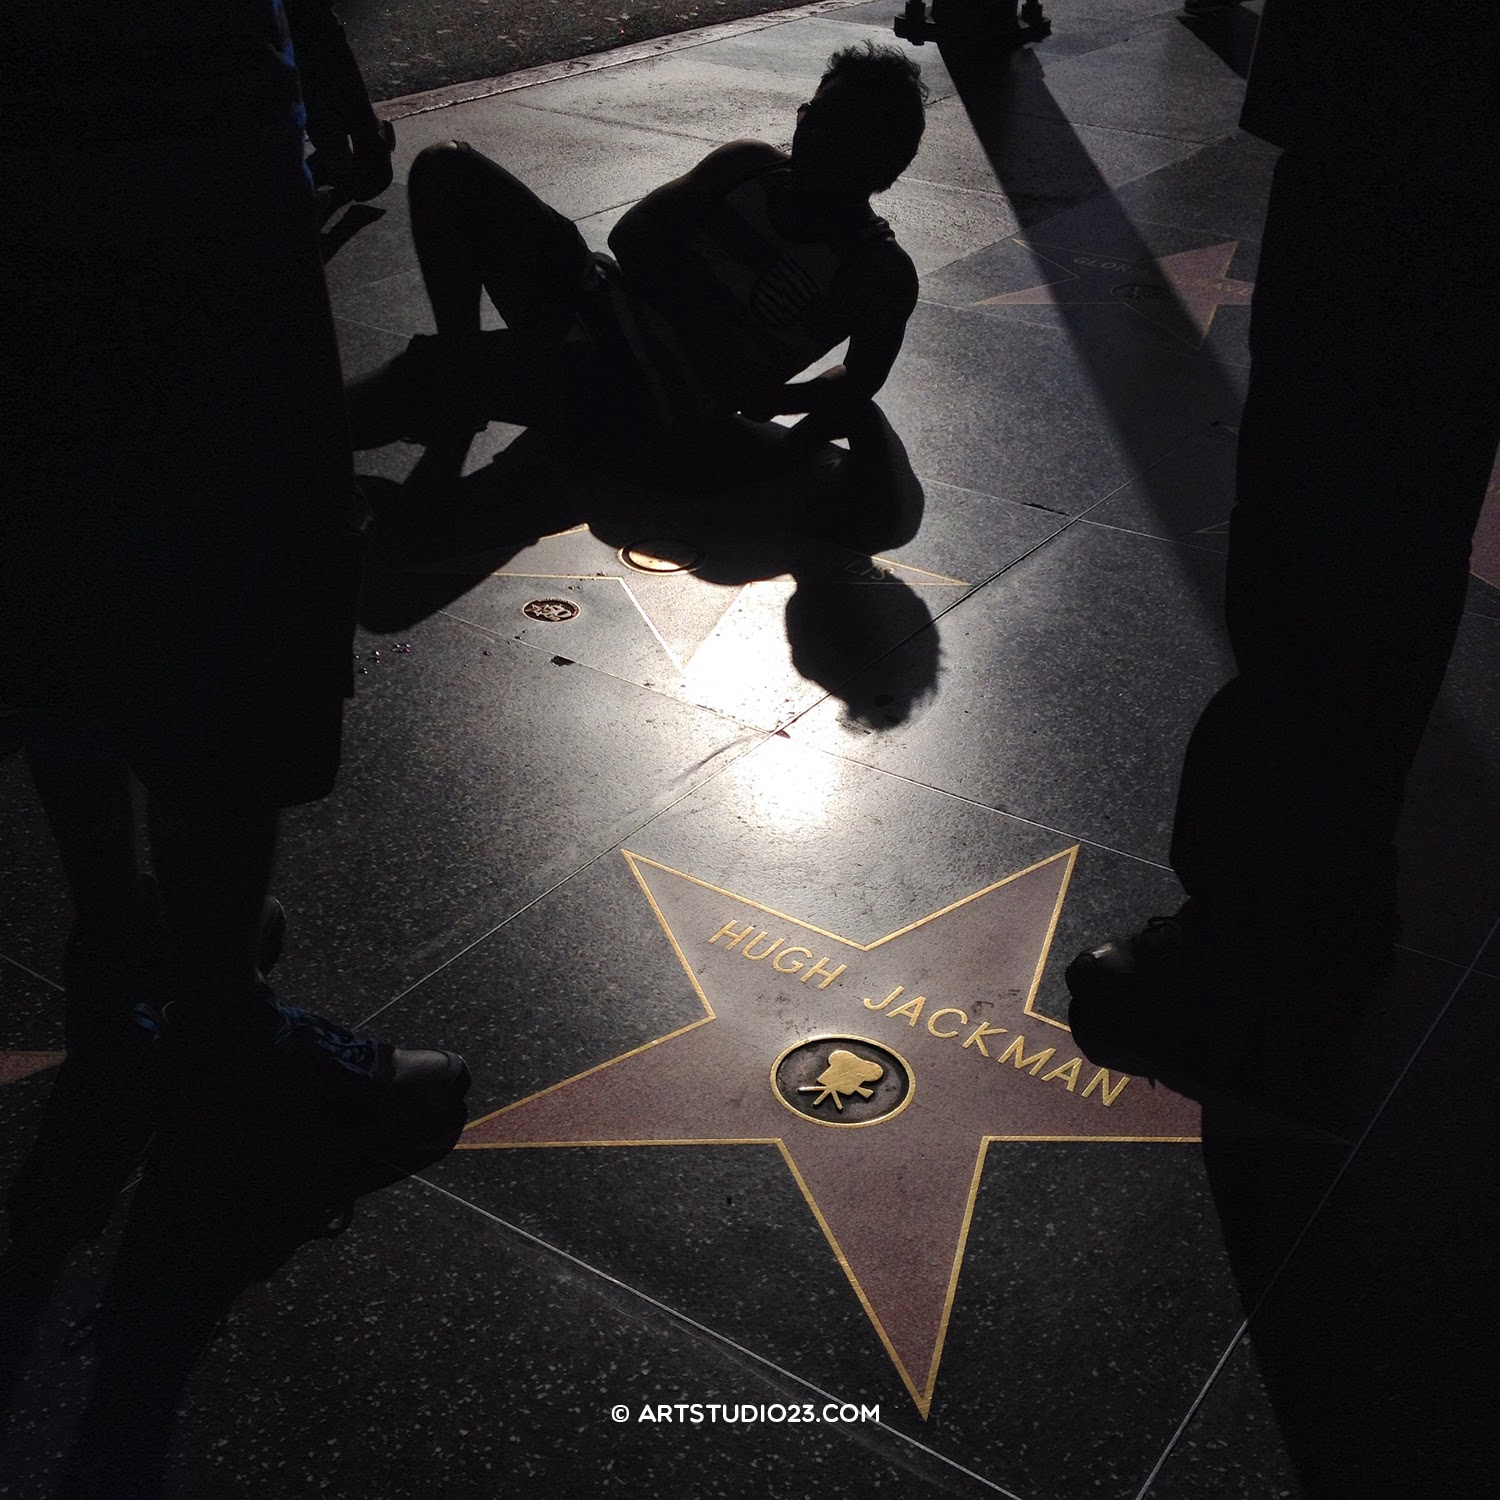 Miksang backlight - Hollywood Blvd - Walk of Fame